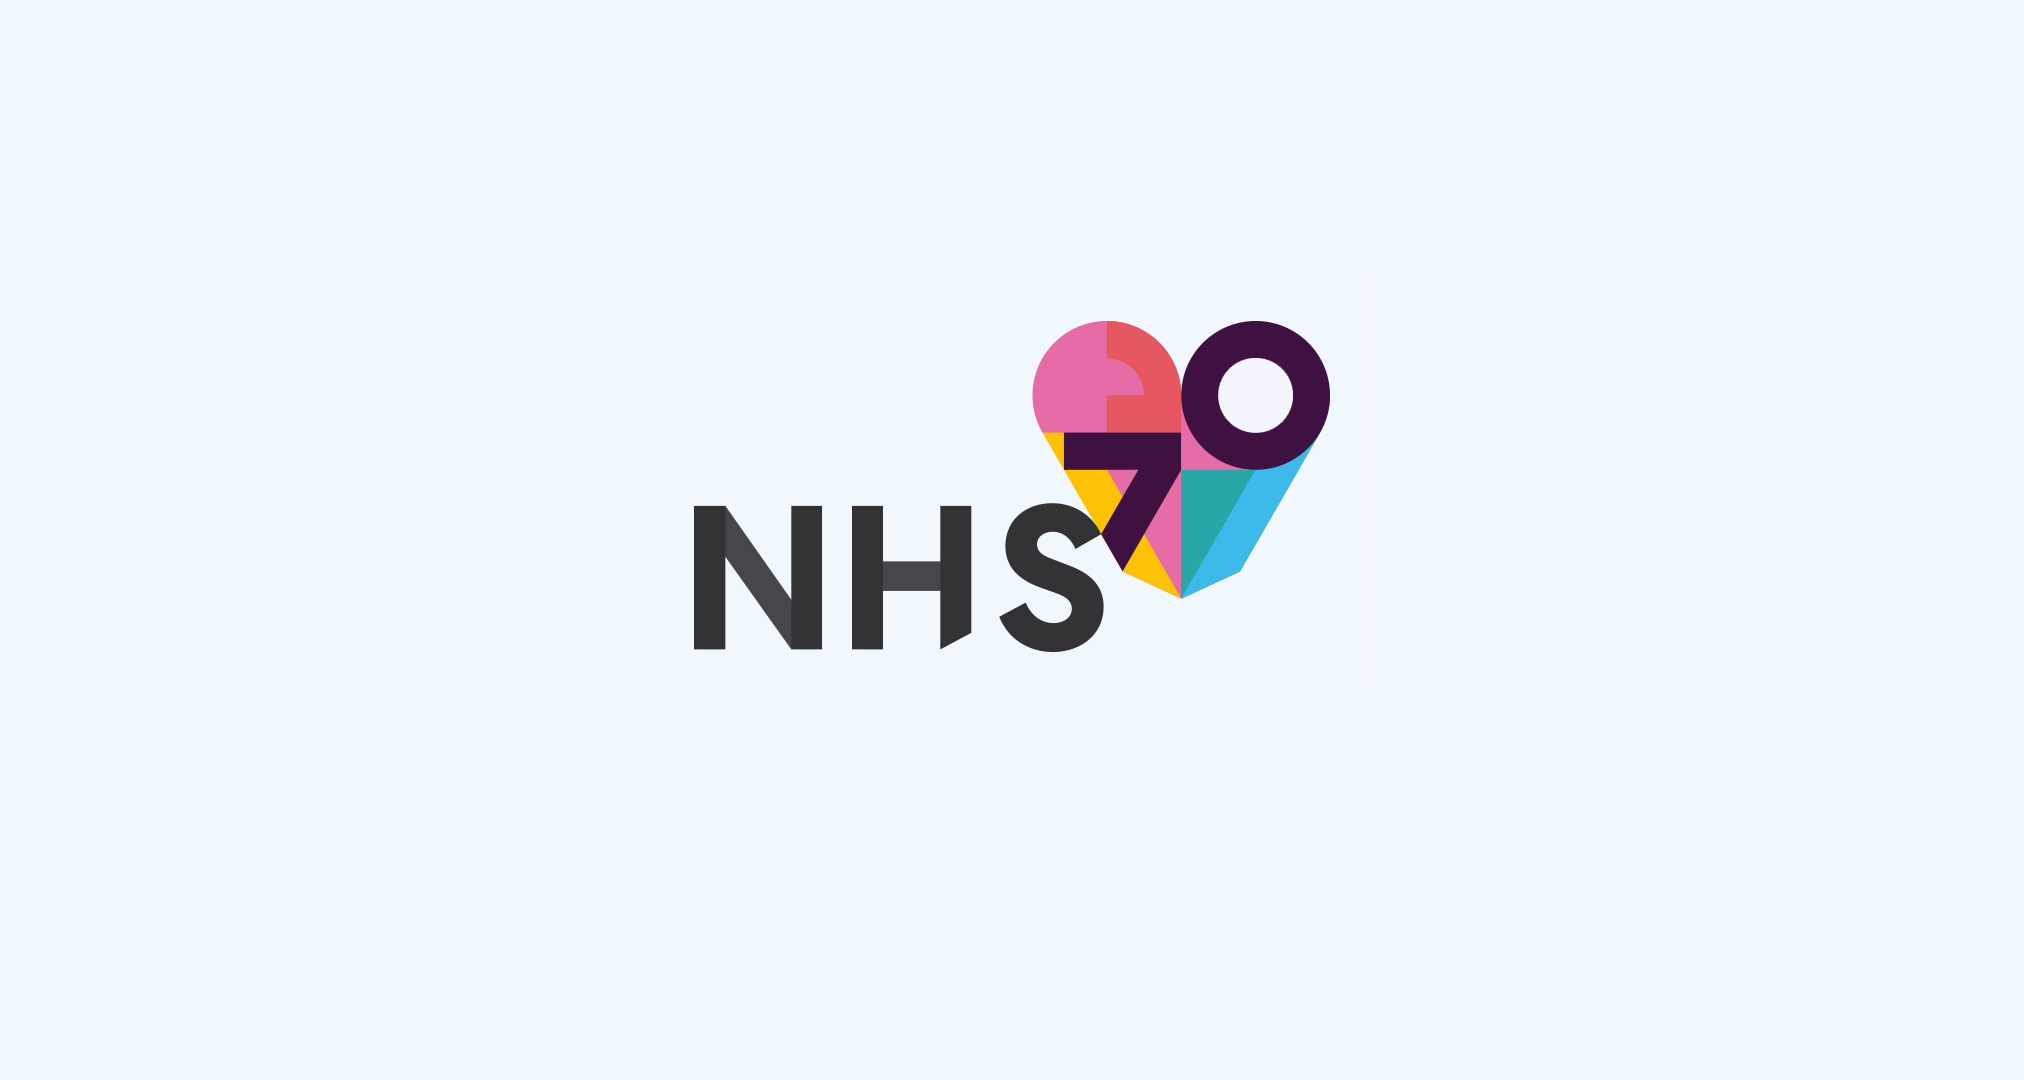 Bwtic_NHS70_Logotype.jpg